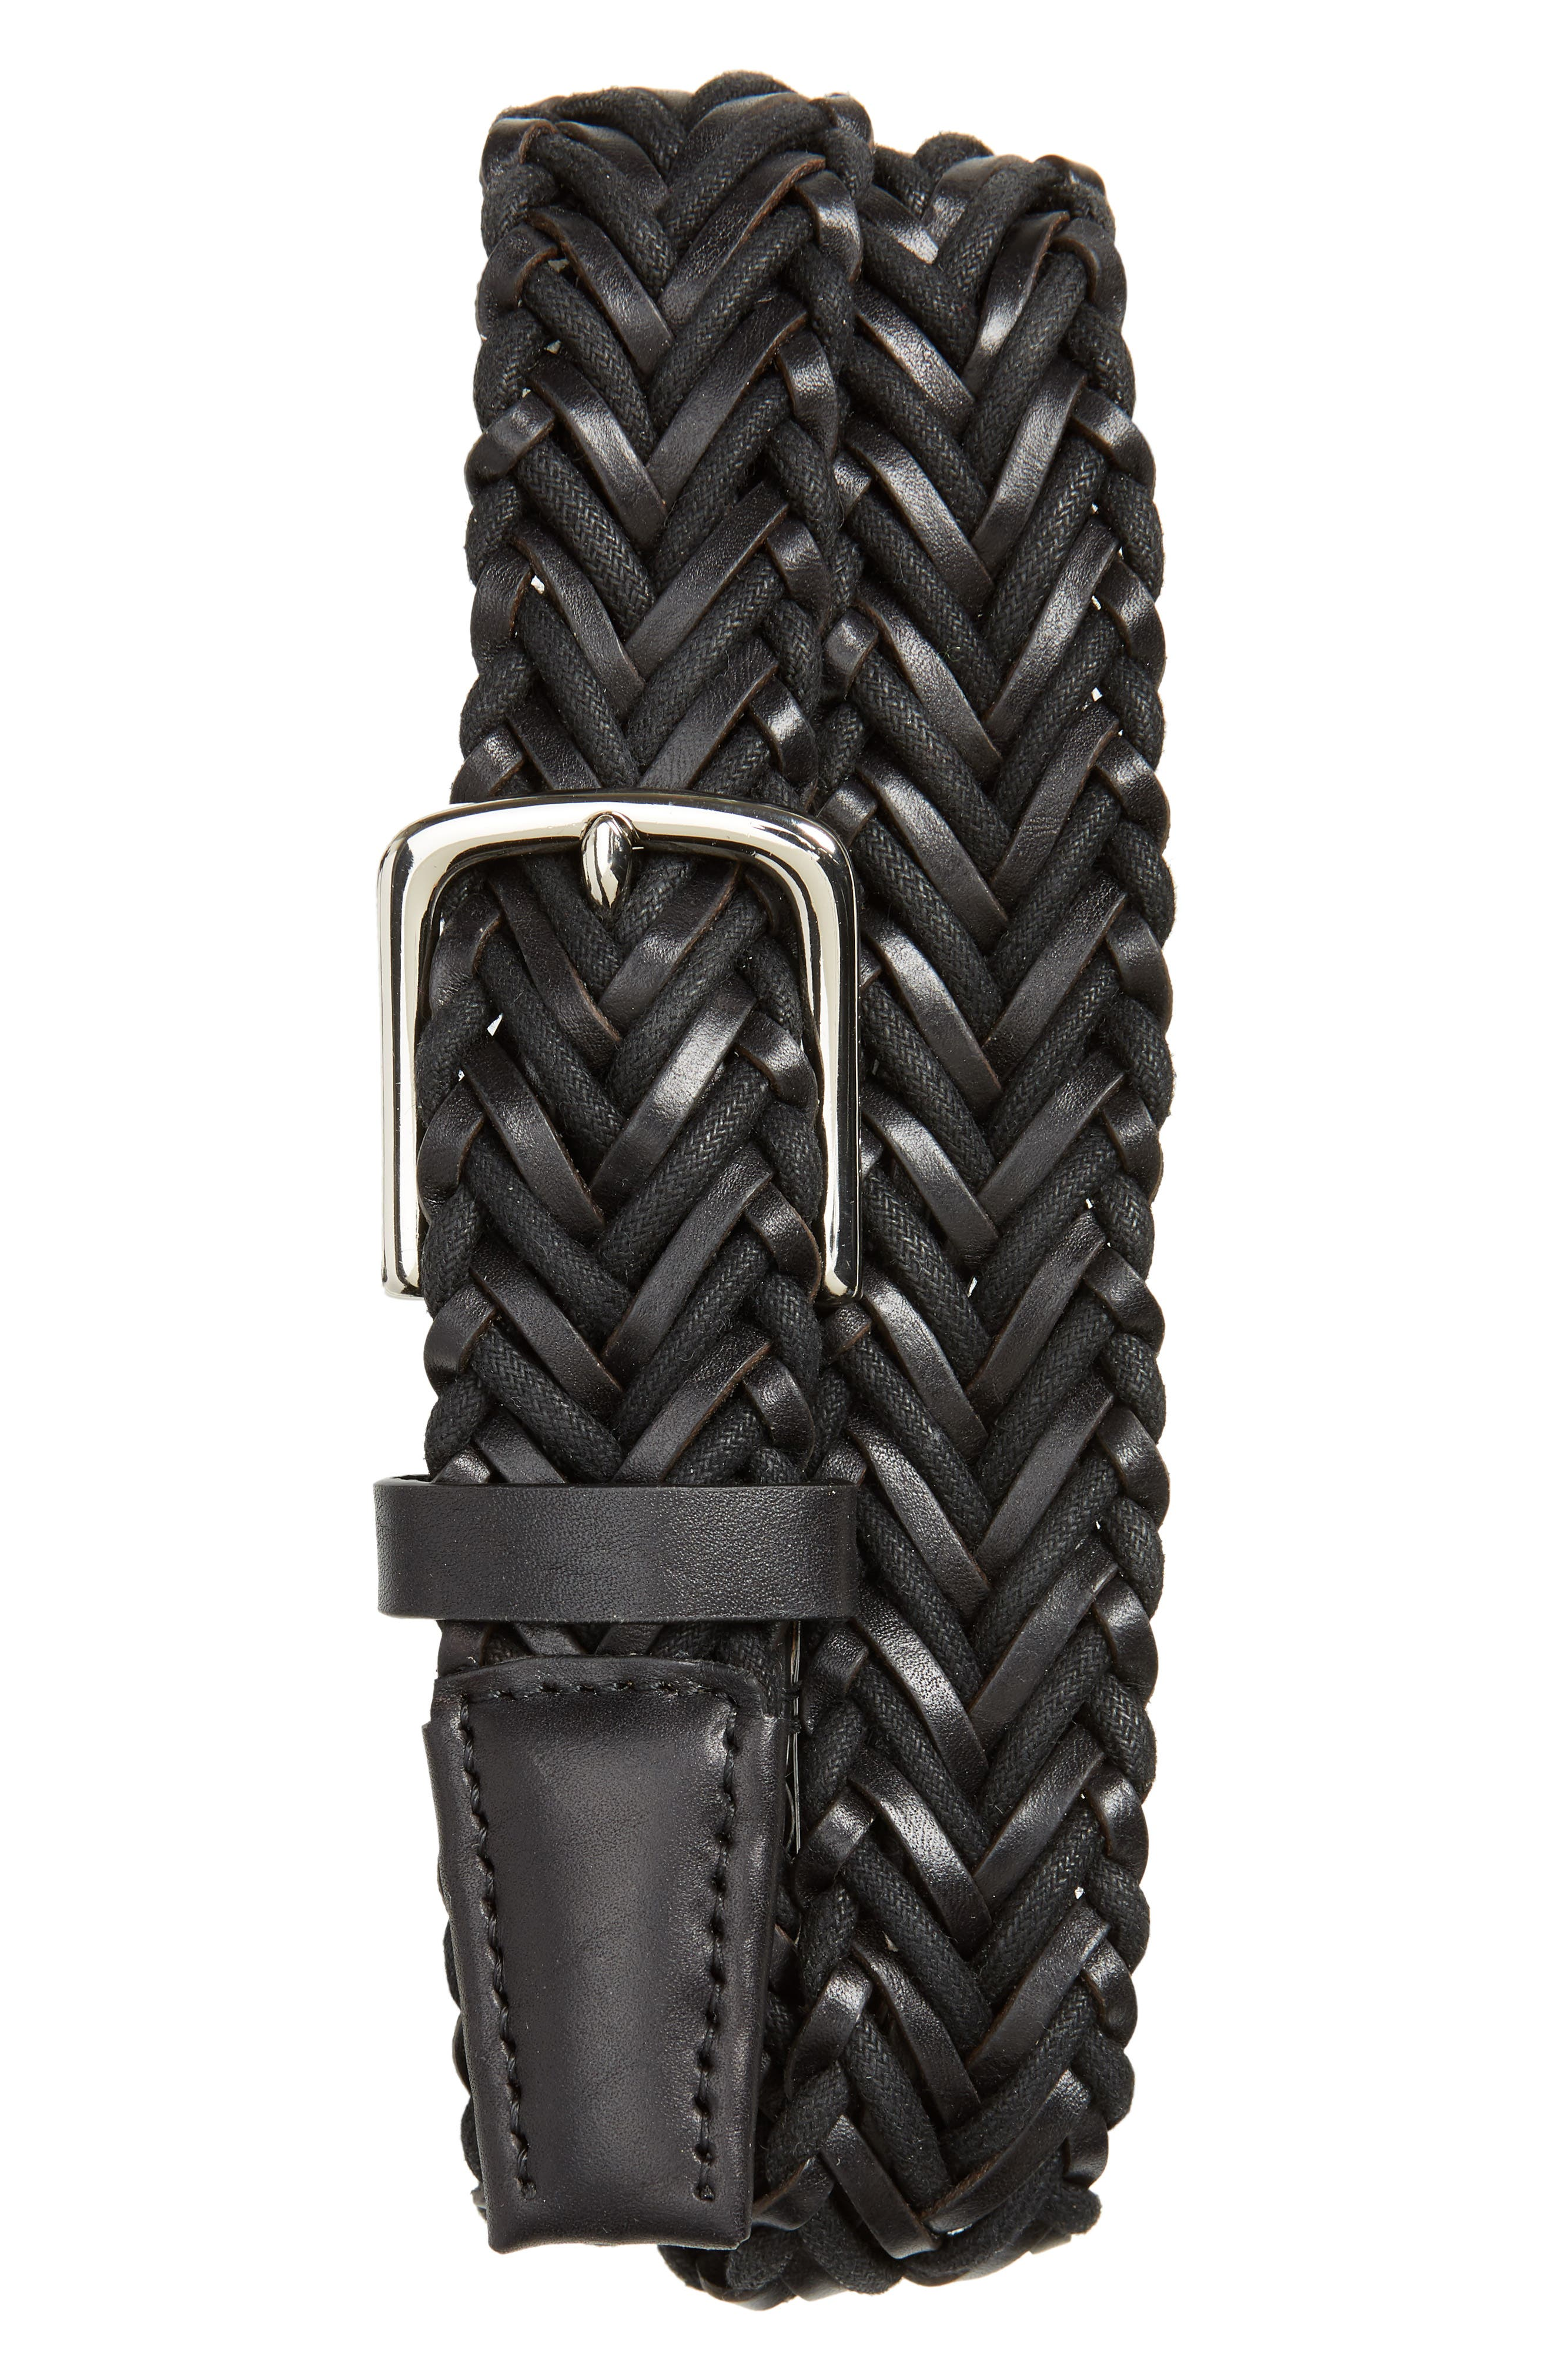 Cole Haan Braided Leather & Cord Belt, Black/ Polished Nickel